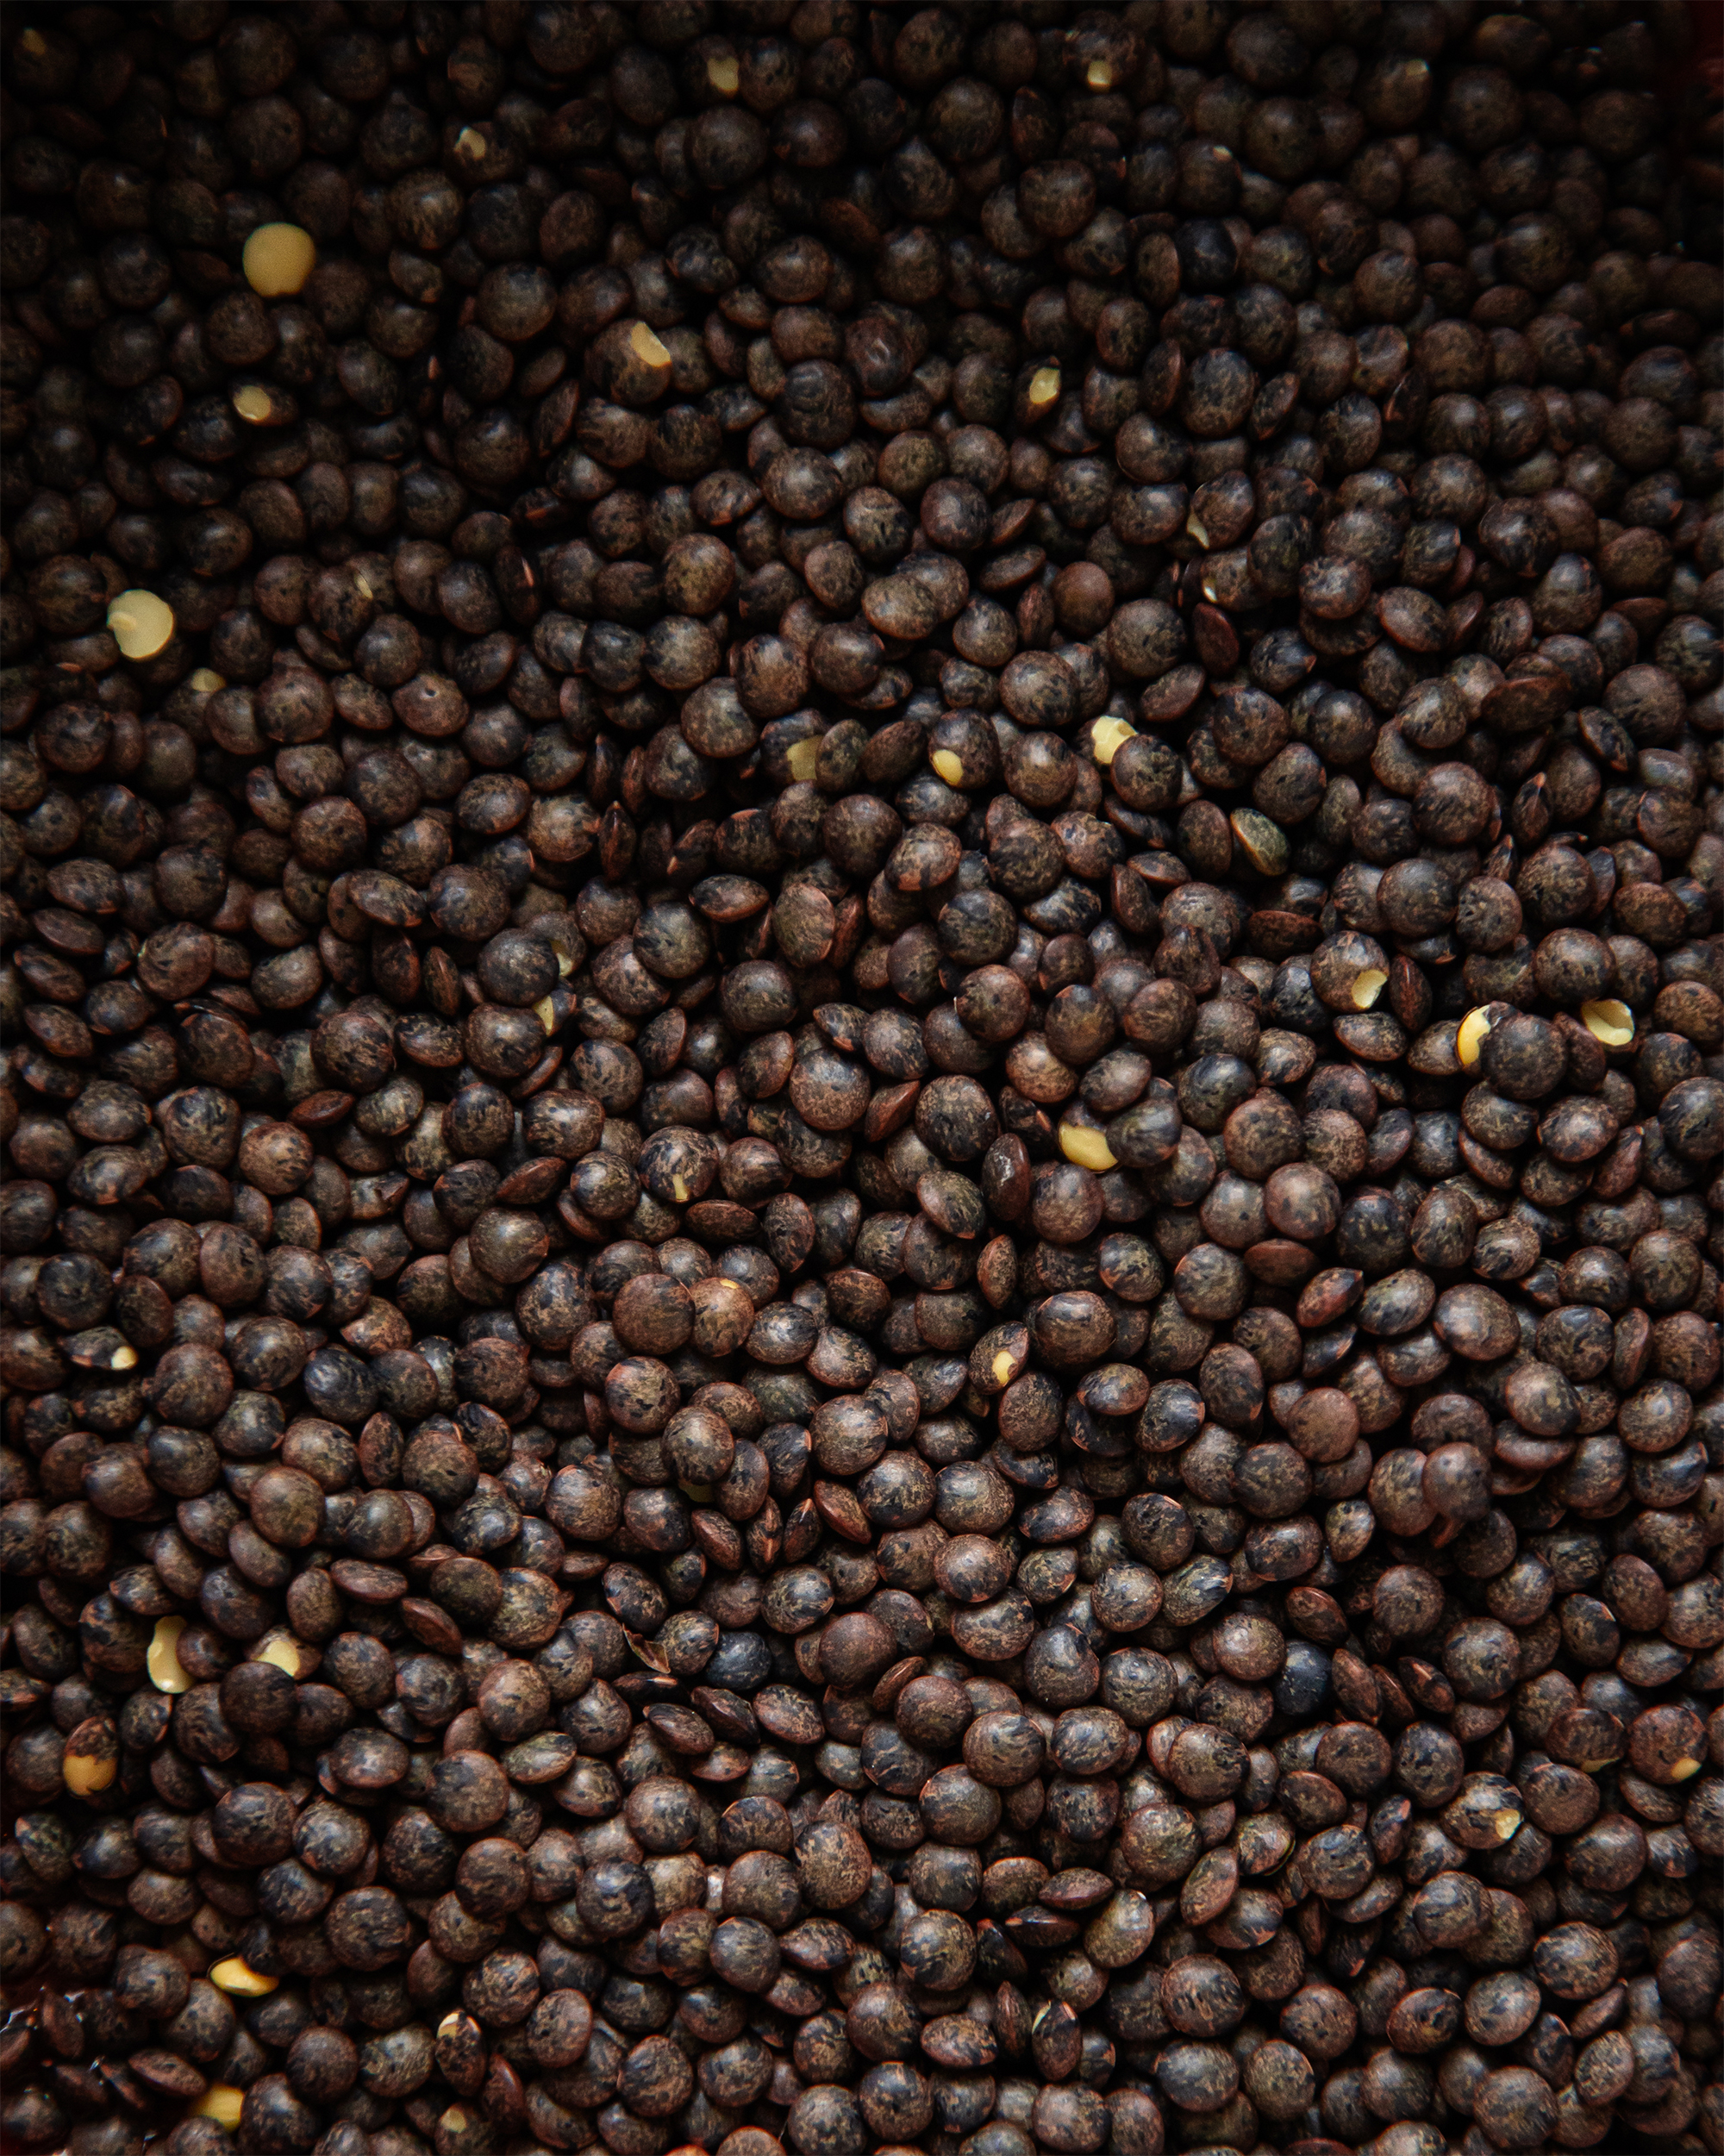 Image is a closeup of some dry French lentils in low lighting.